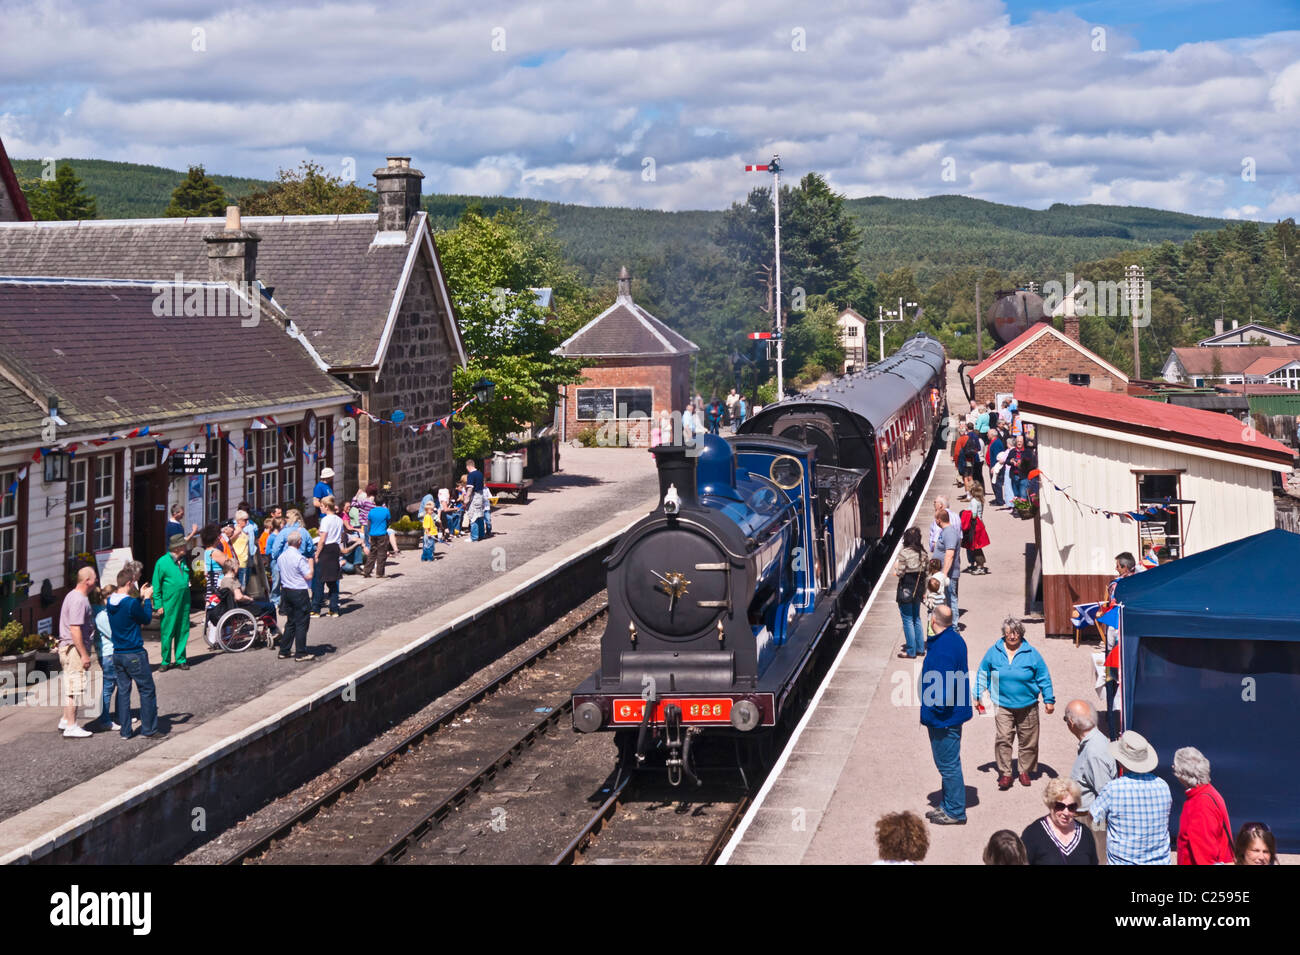 Ex. Caledonian Railway steam engine 828 arriving at Boat of Garten railway station from Broomhill in Strathspey Stock Photo